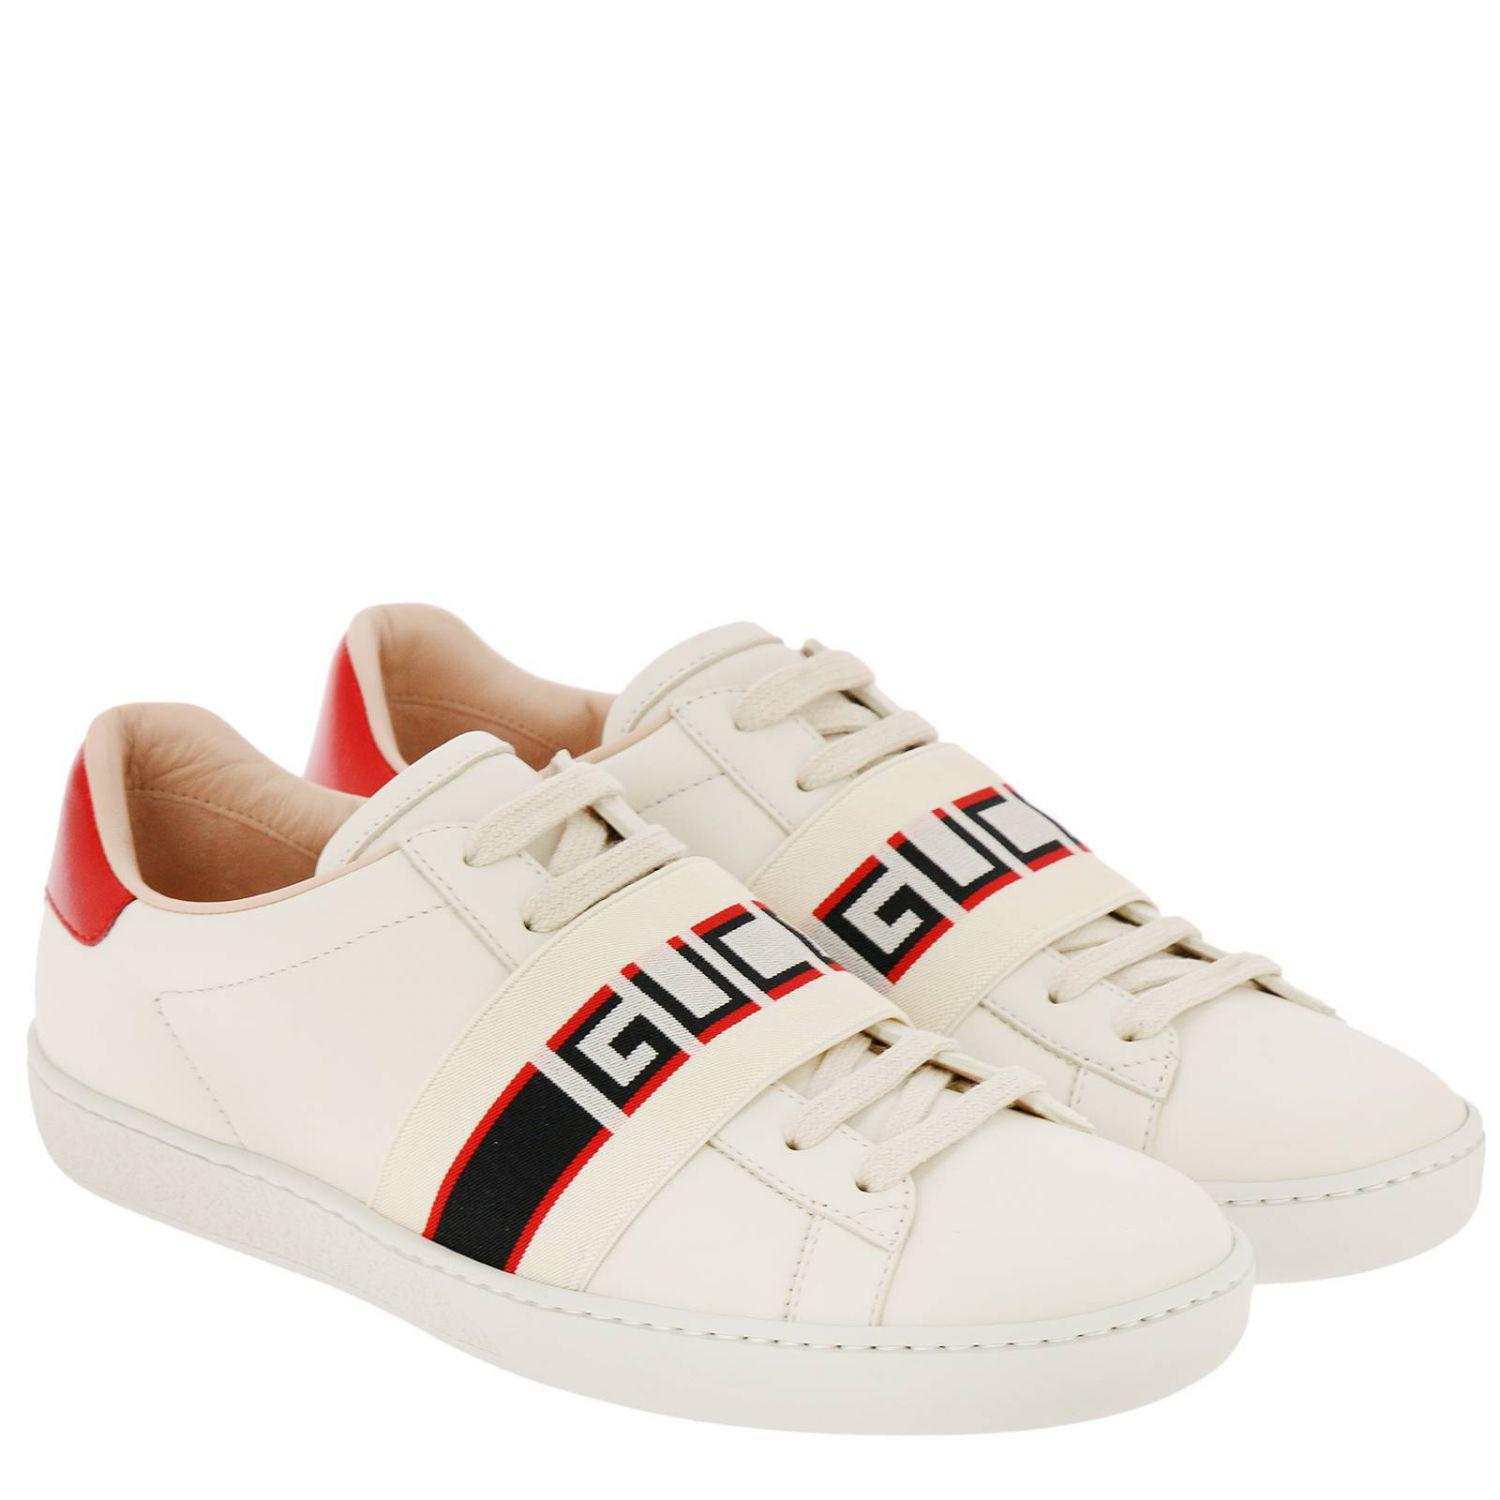 419efecd52c Lyst - Gucci New Ace Sneakers In Soft Leather With Elastic Band in White